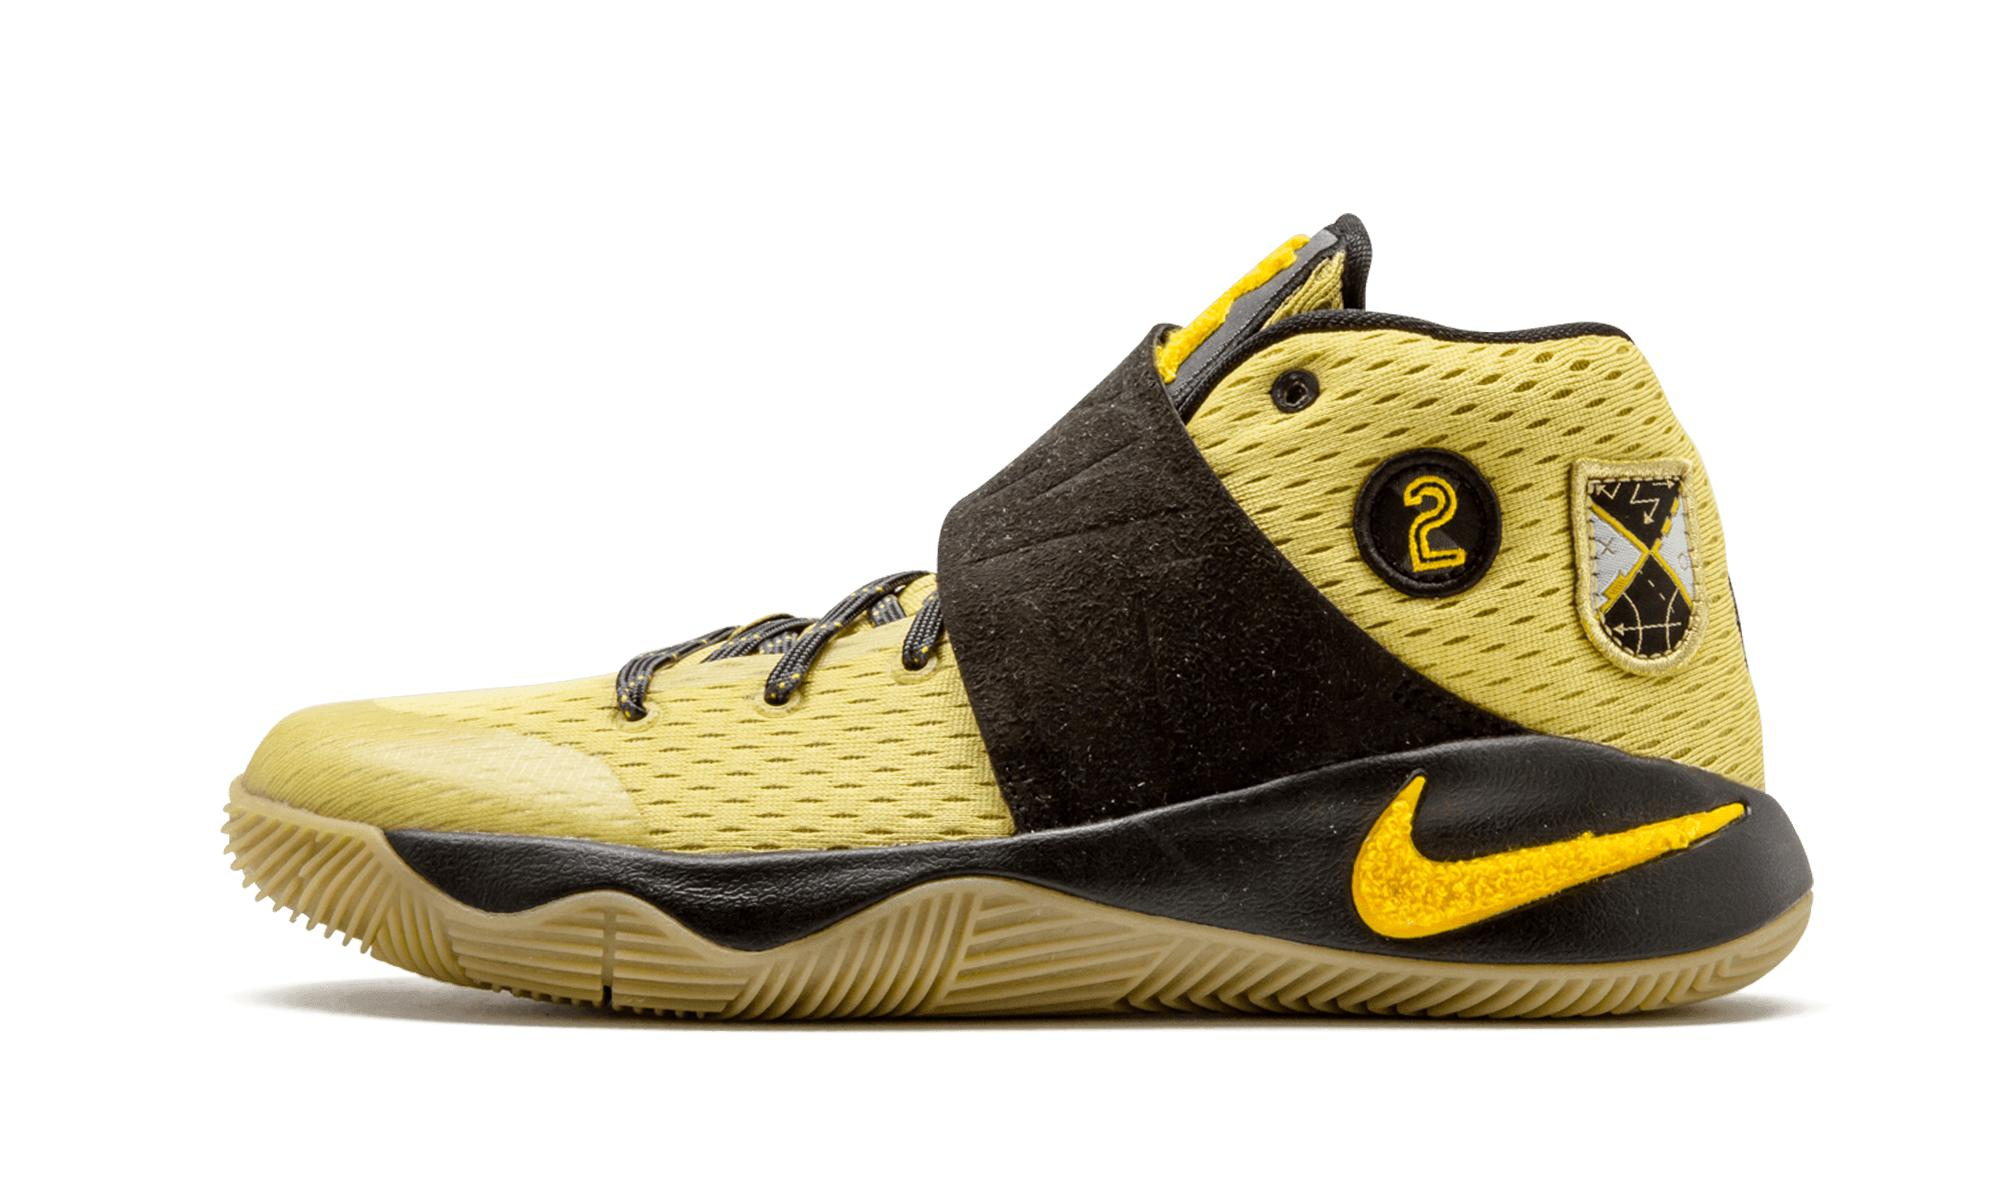 bf372f7076a9 ... new zealand lyst nike kyrie 2 as gs in yellow for men save 65.5 e1223  78160